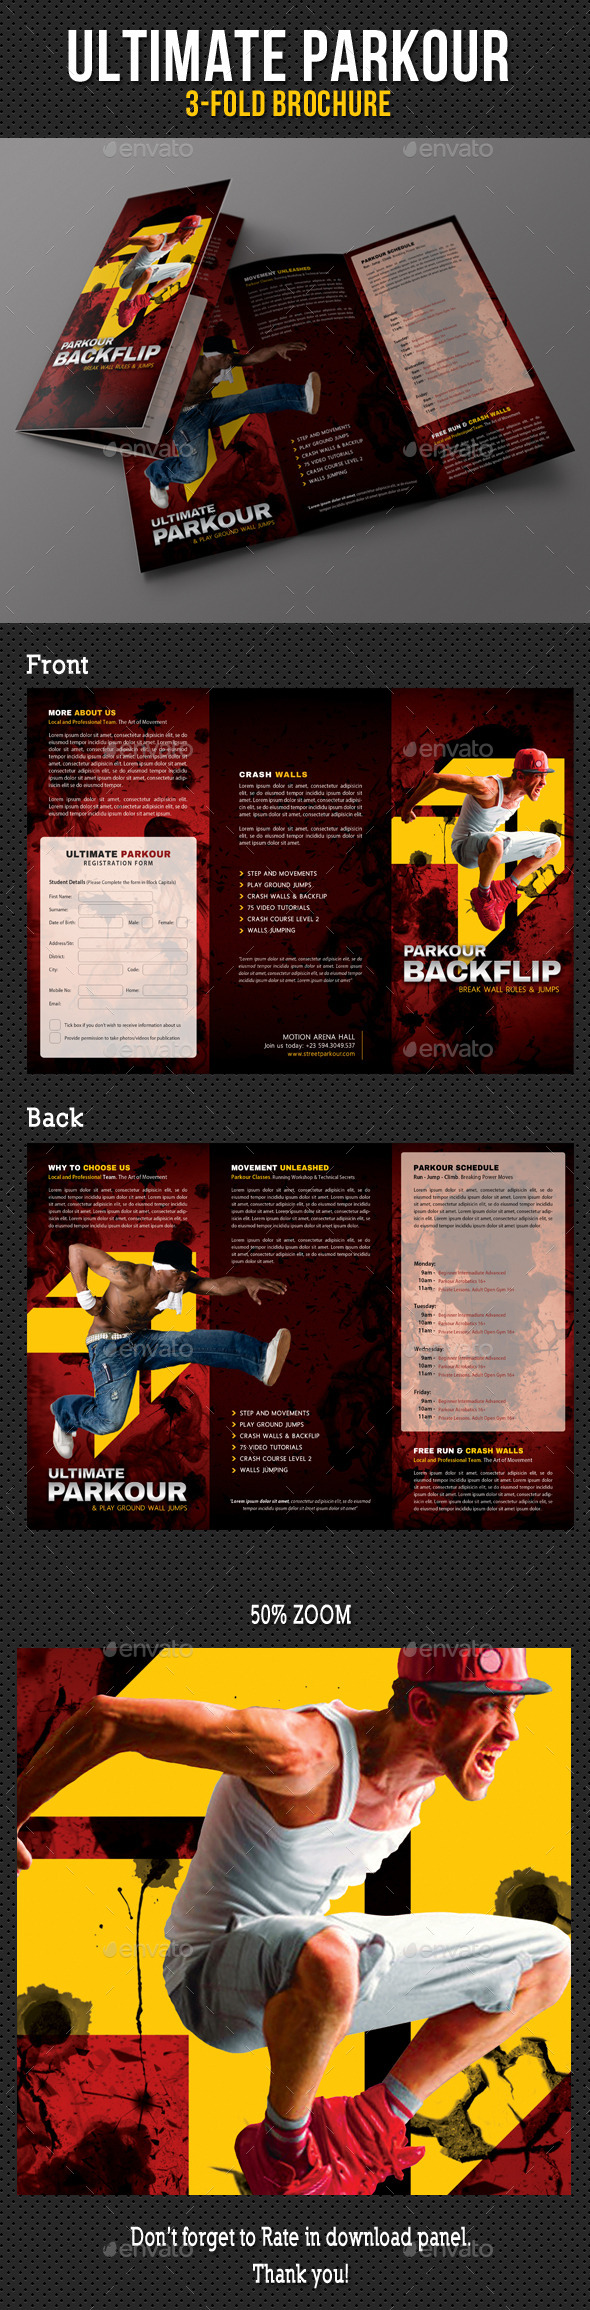 Ultimate Parkour 3-Fold Brochure V2 - Brochures Print Templates